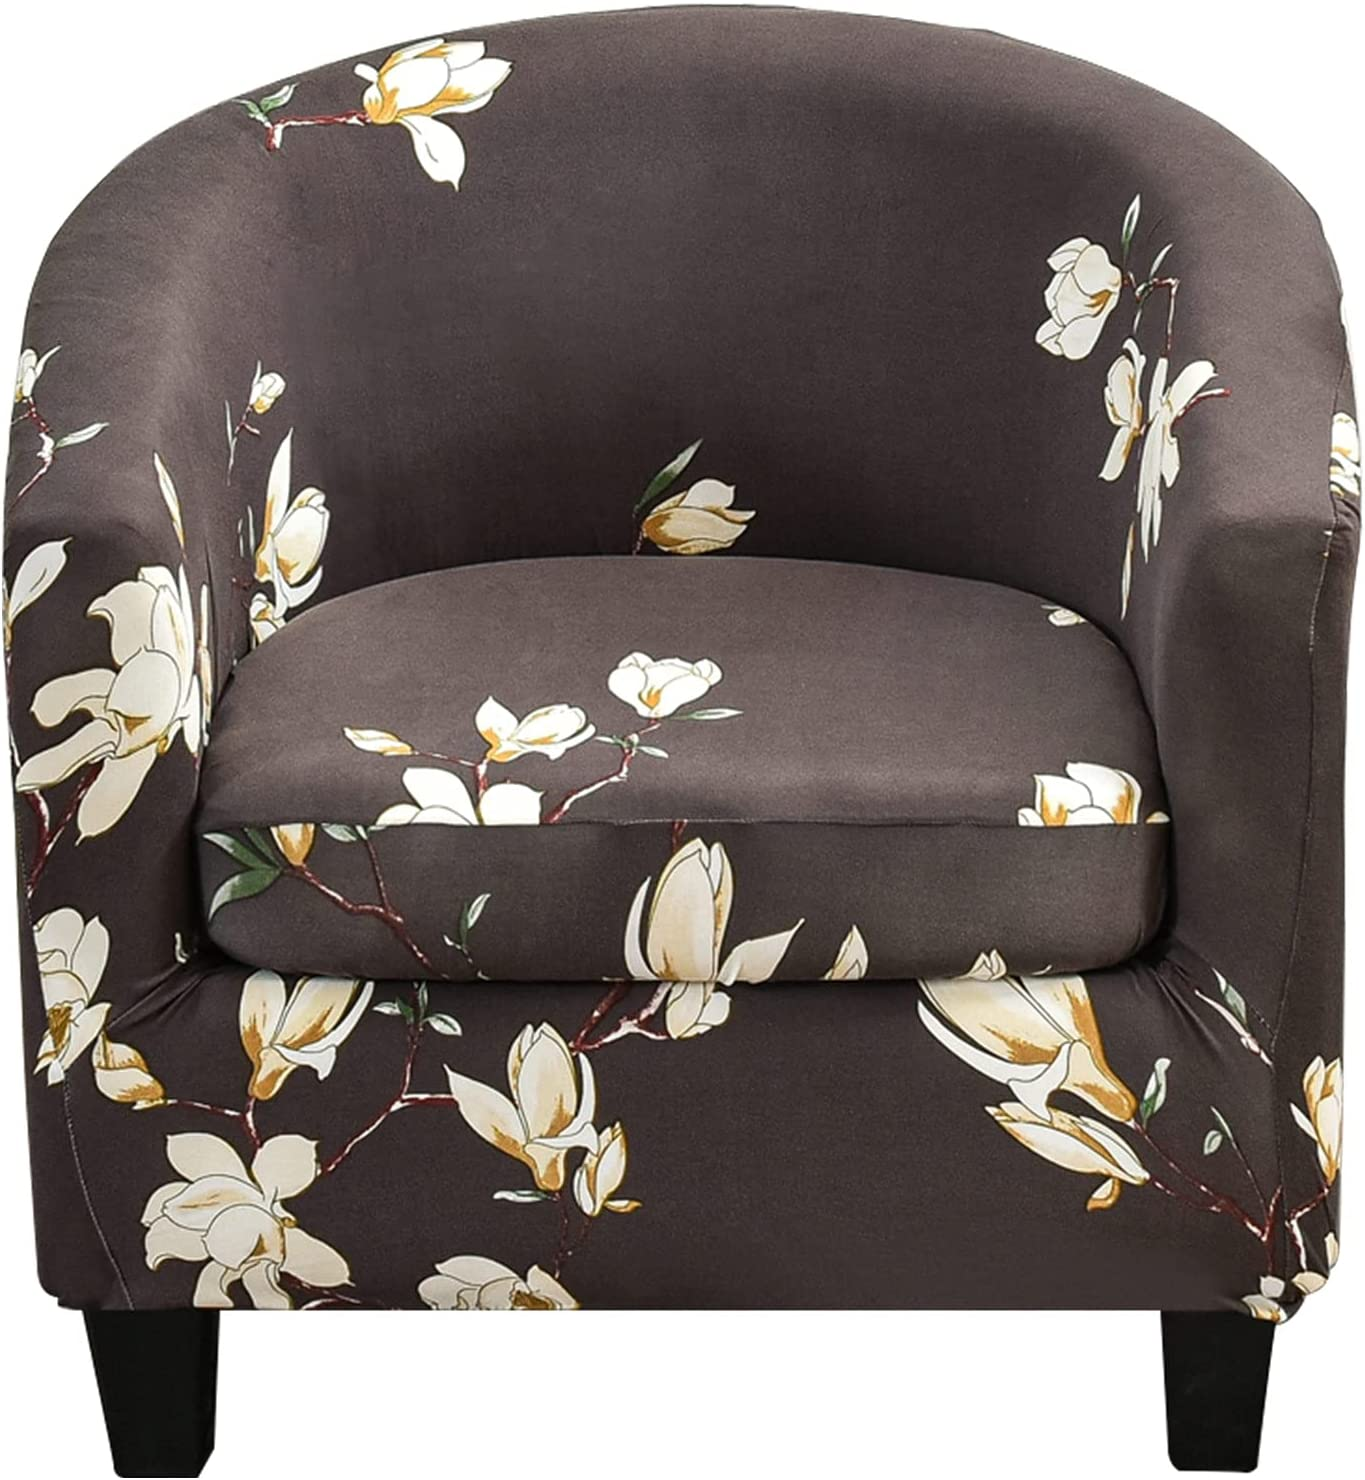 Tub Chair Slipcovers 2 Brand new Award Piece Club Stretch wi Printed Cover